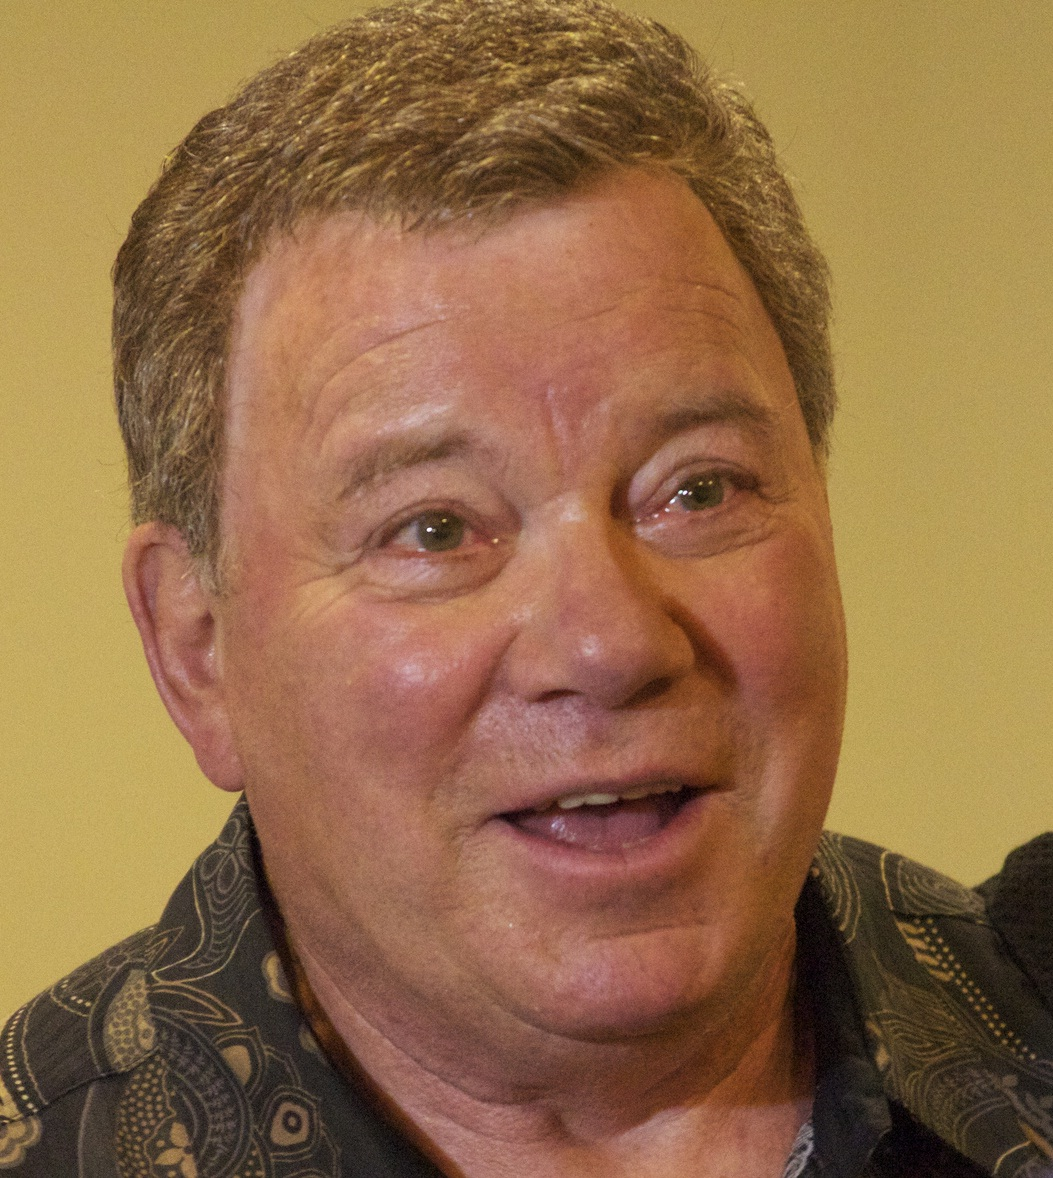 William Shatner quotes (11 quotes) | Quotes of famous people